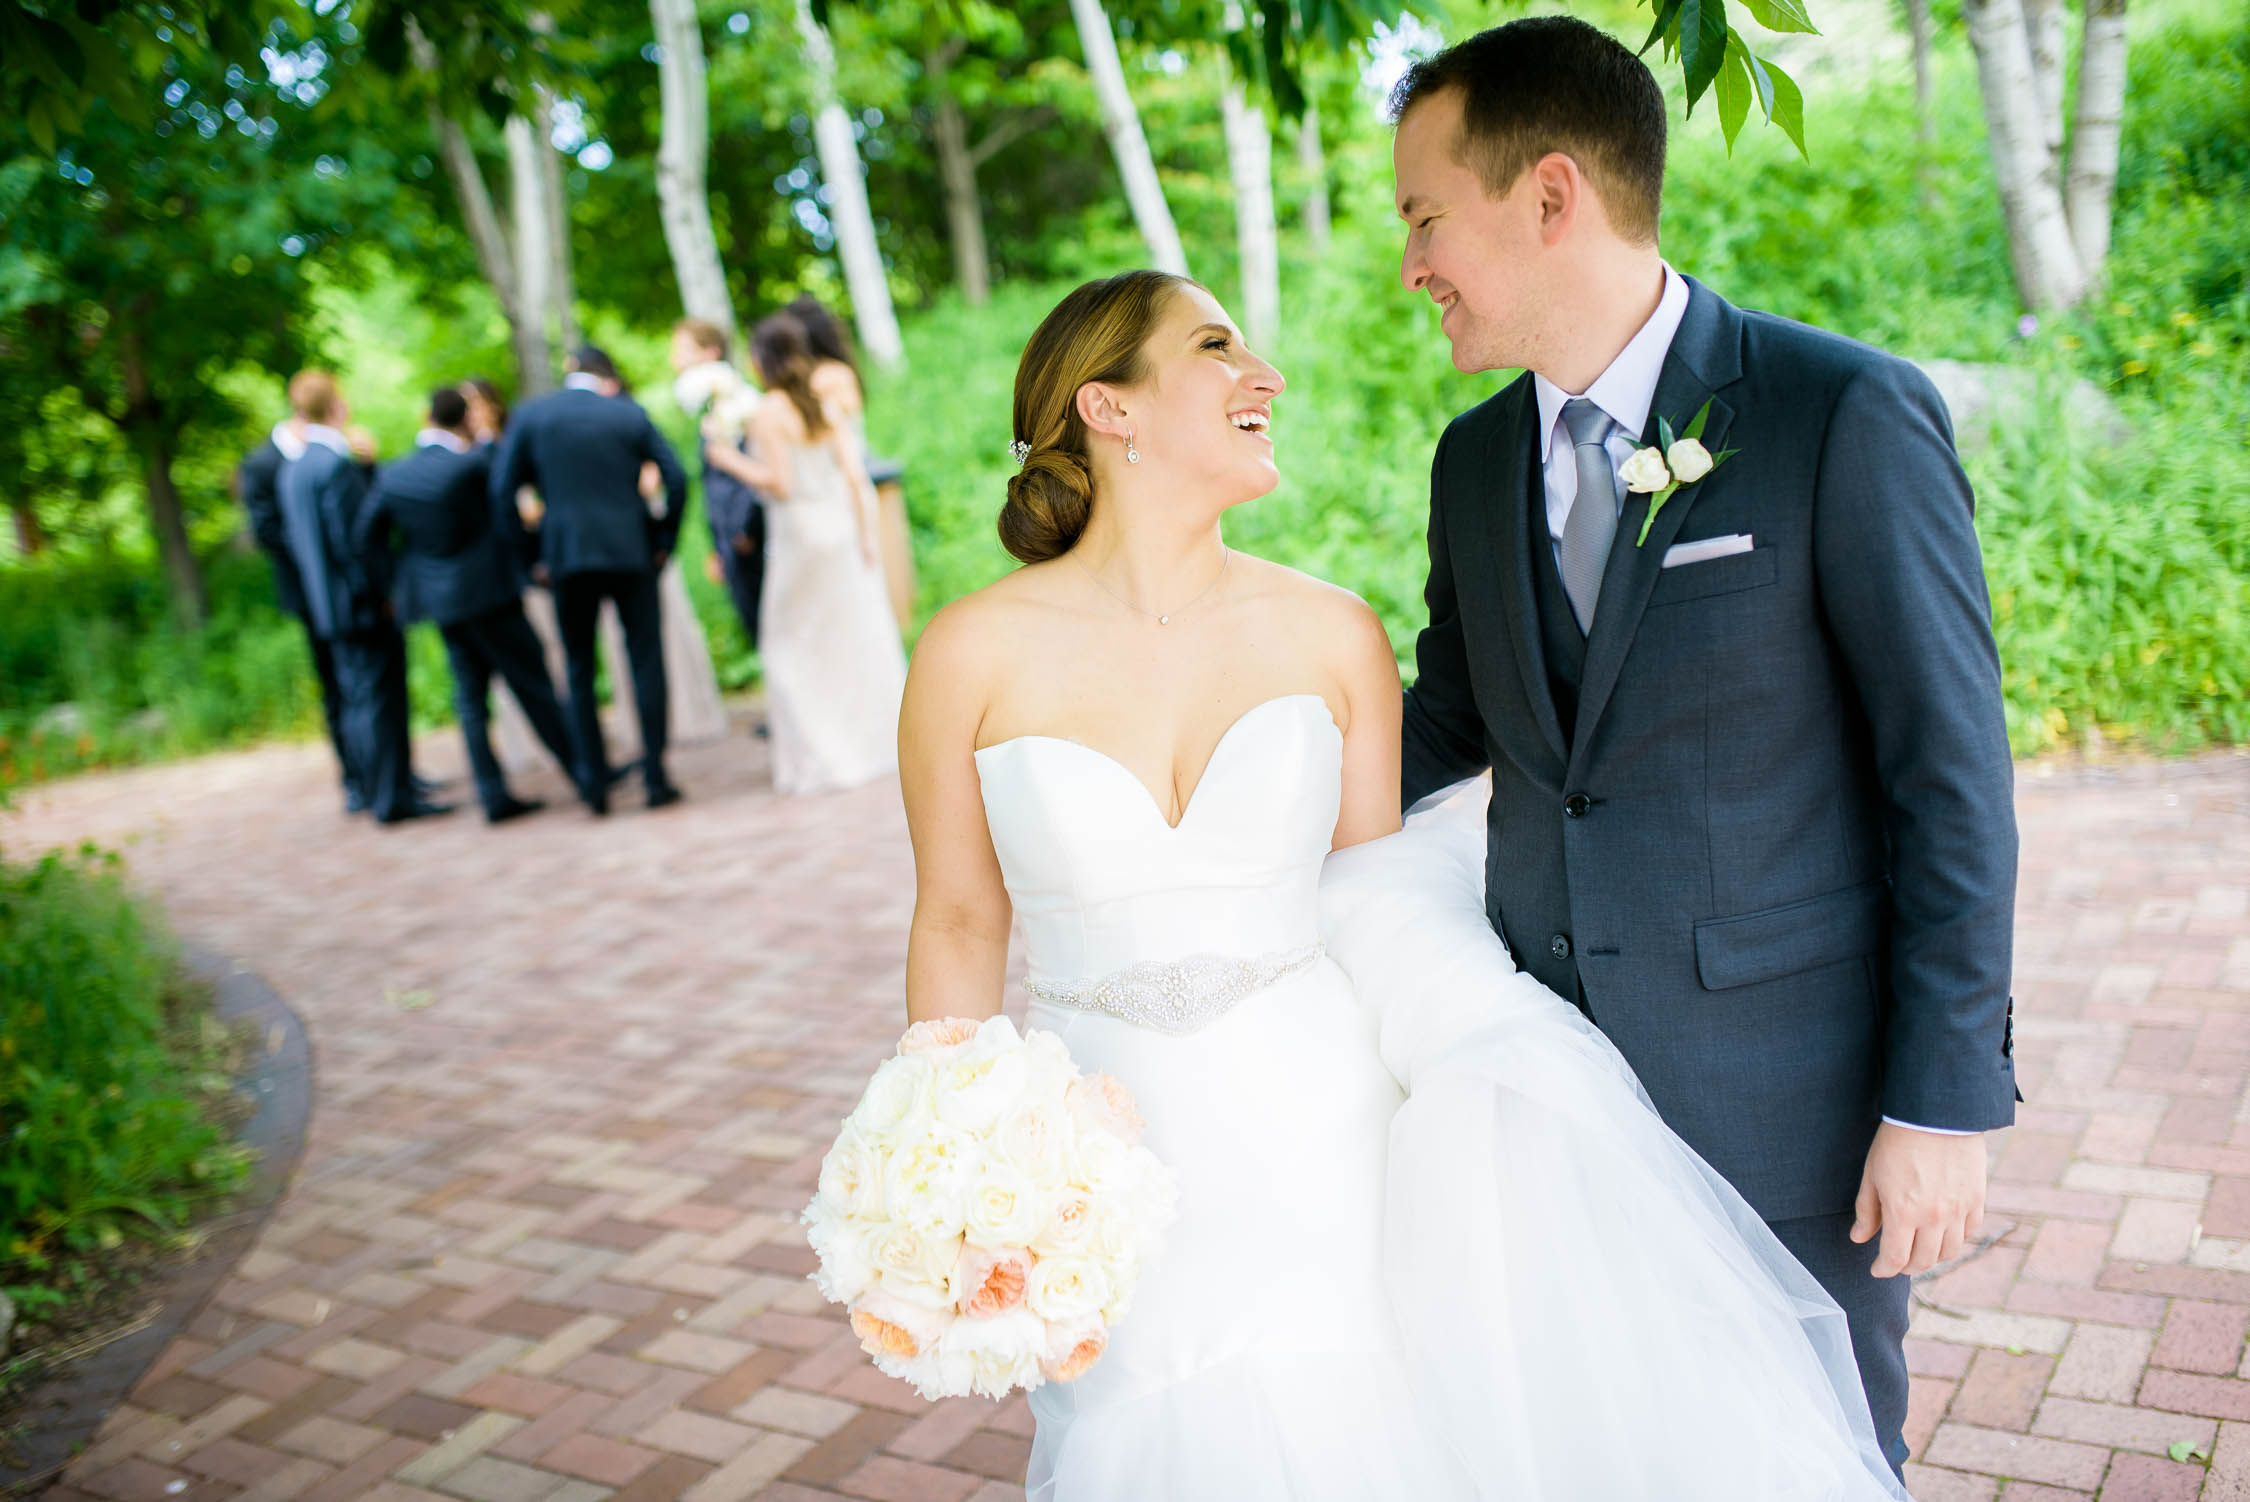 Bride and groom share a laugh together on their wedding day at Independence Grove in Libertyville.